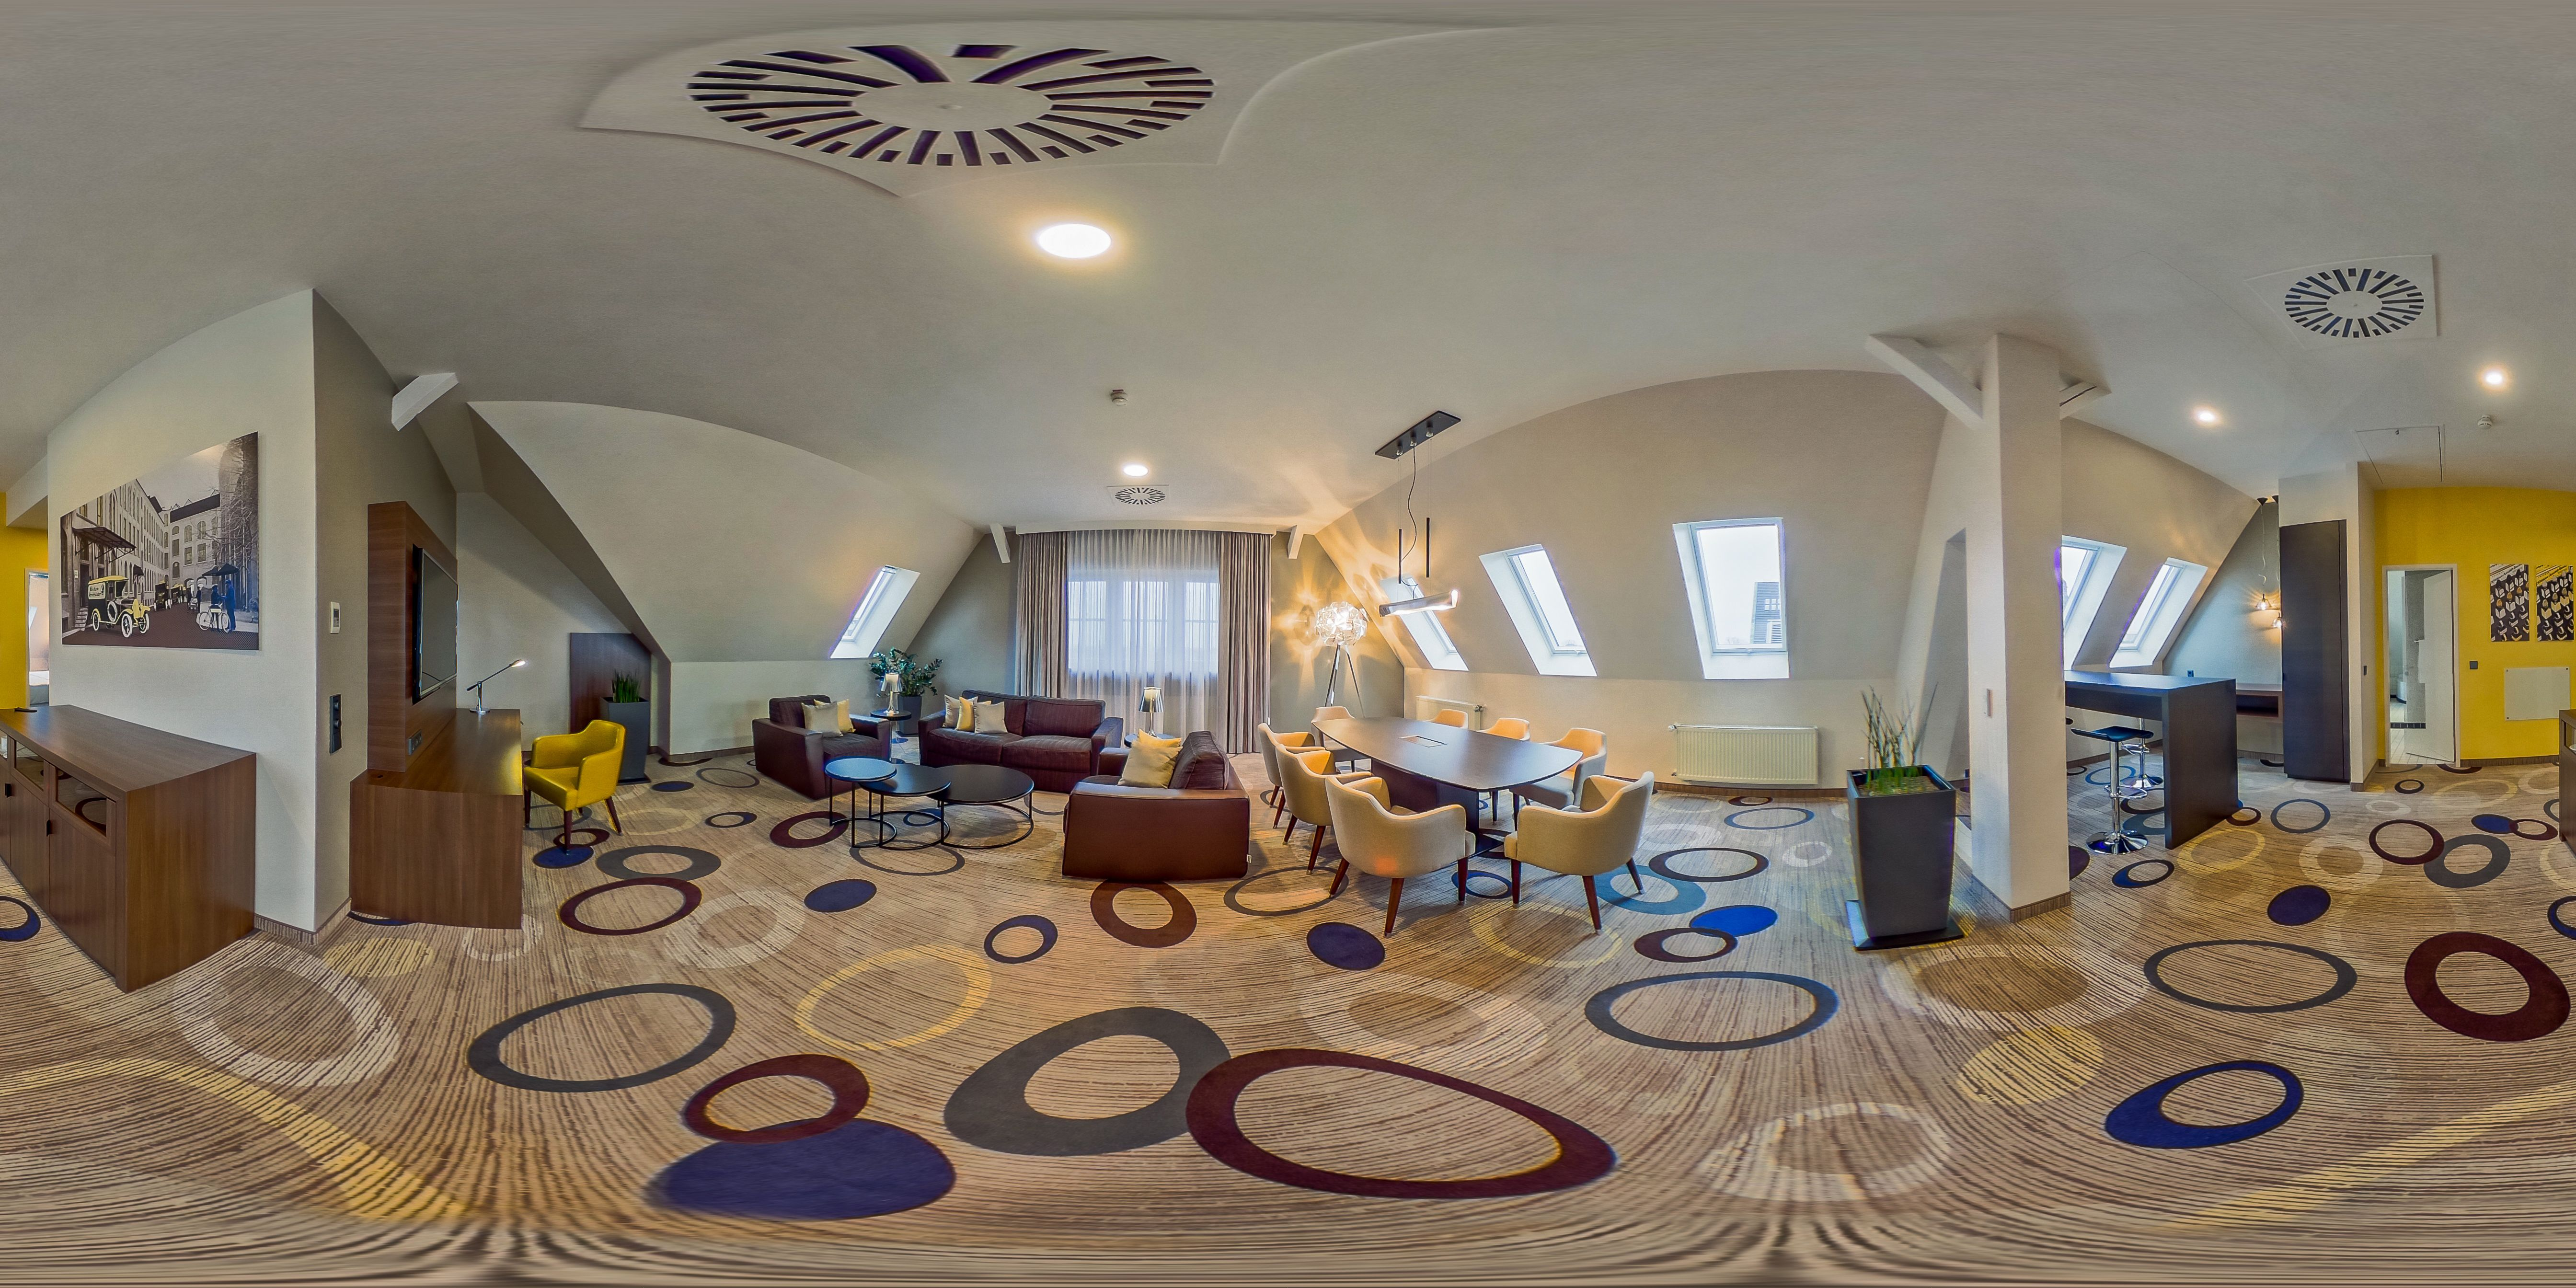 360 Tour Through Sheraton Hanover Pelikan Hotel